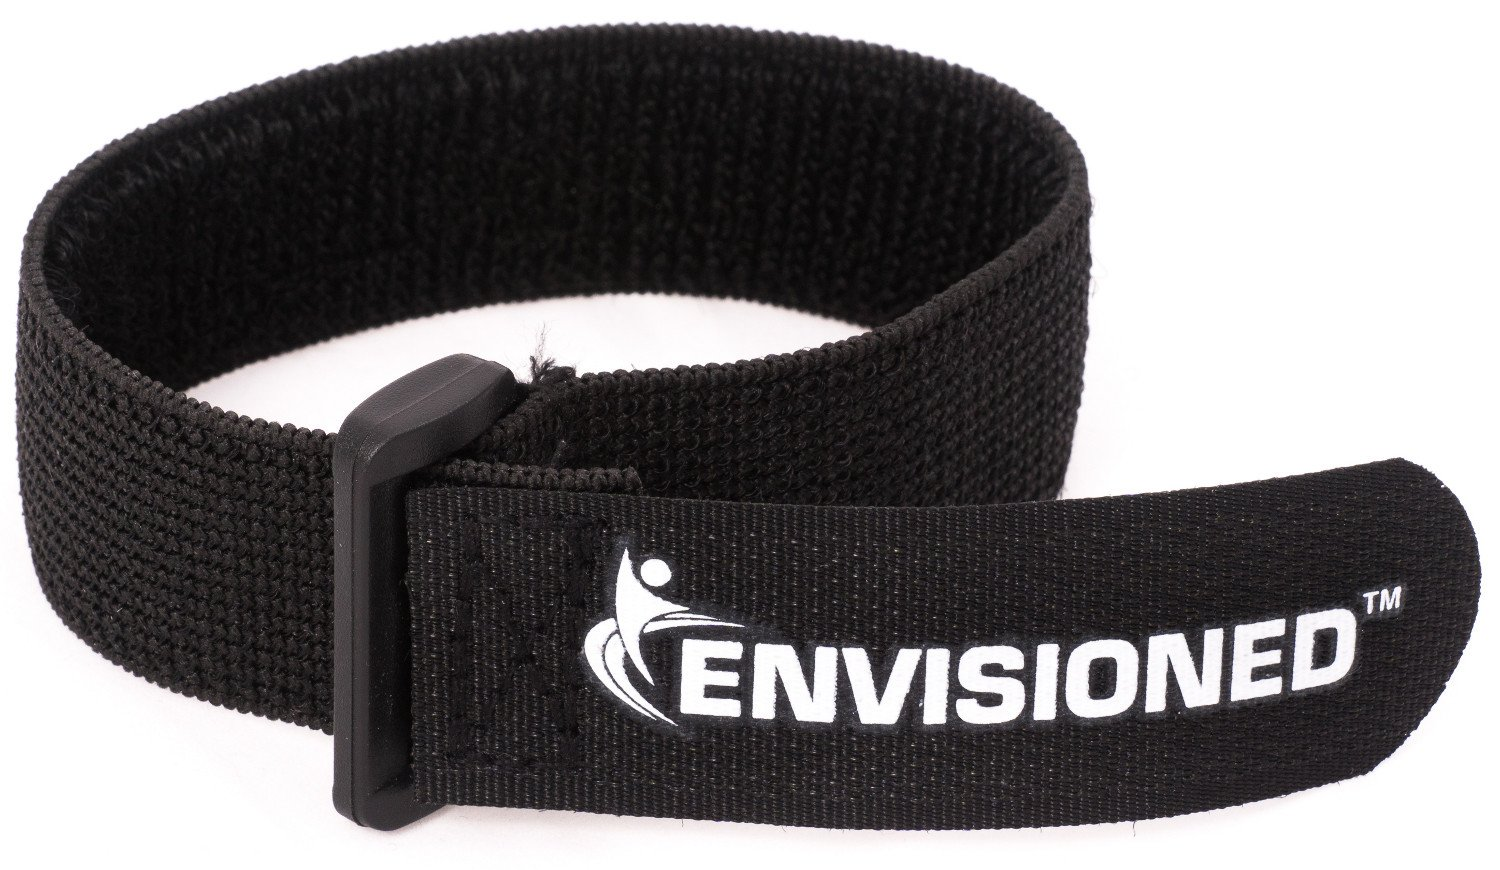 Elastic Reusable Cinch Straps 1''x12'' - 10 Pack Hook and Loop - Plus 2 Free Bonus Reusable Cable Ties